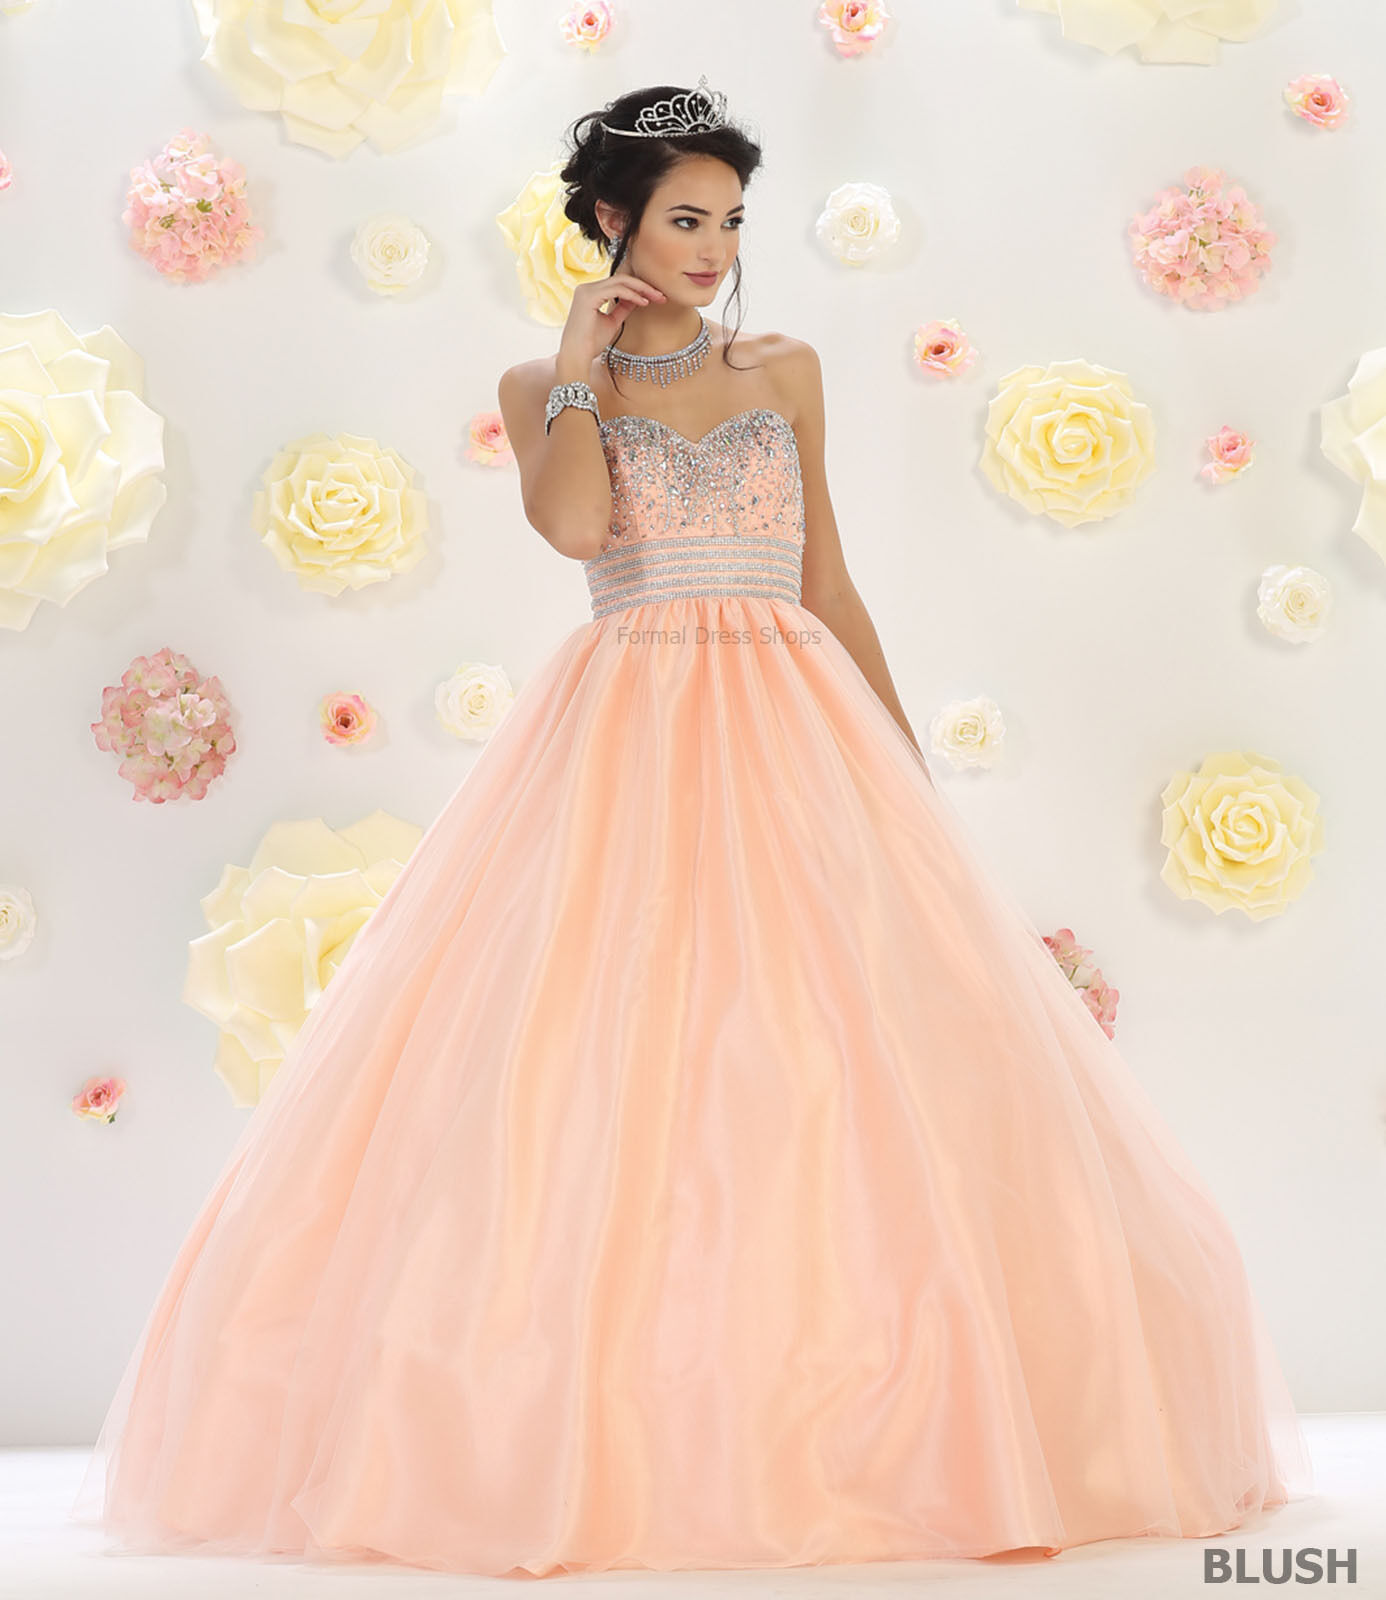 0e37cb05283 SALE QUINCEAÑERA QUINCEAÑERA QUINCEAÑERA MASQUERADE BALL ROOM GOWN PROM  SWEET 16 CINDERELLA GALA .